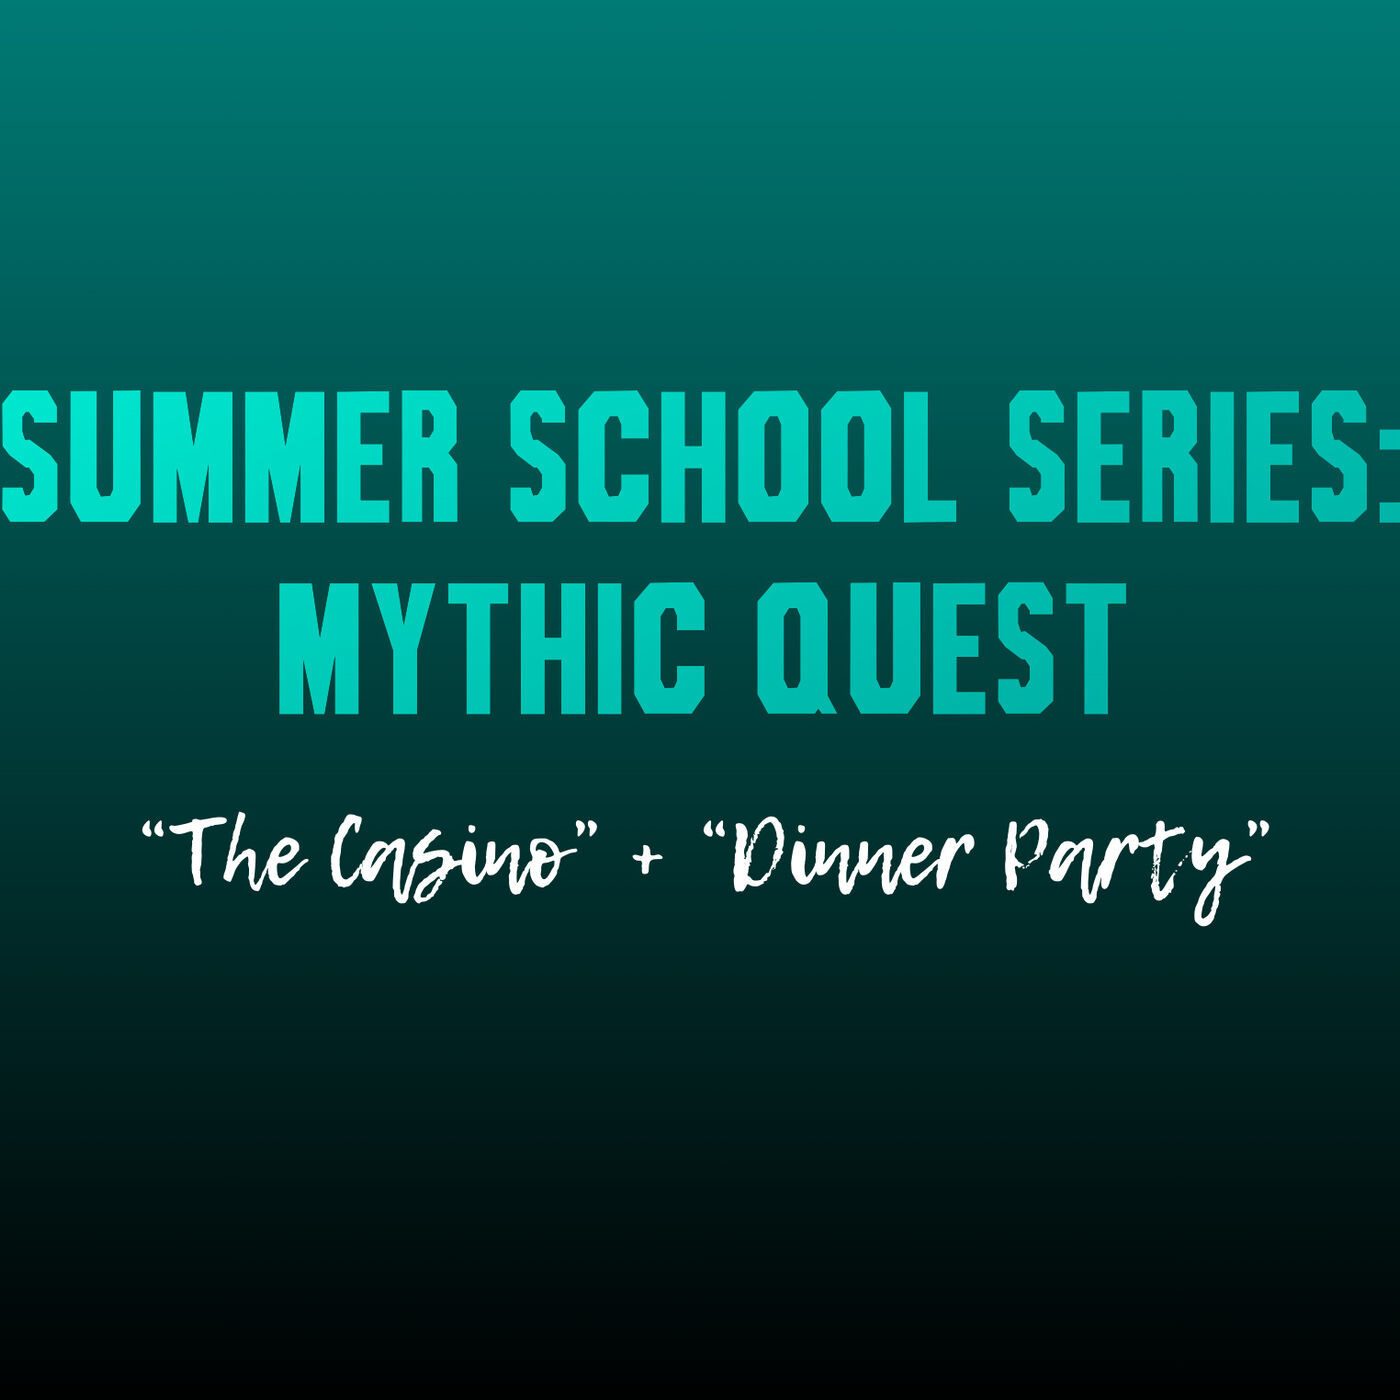 """Summer School Series: Mythic Quest (""""The Casino"""" & """"Dinner Party"""")"""